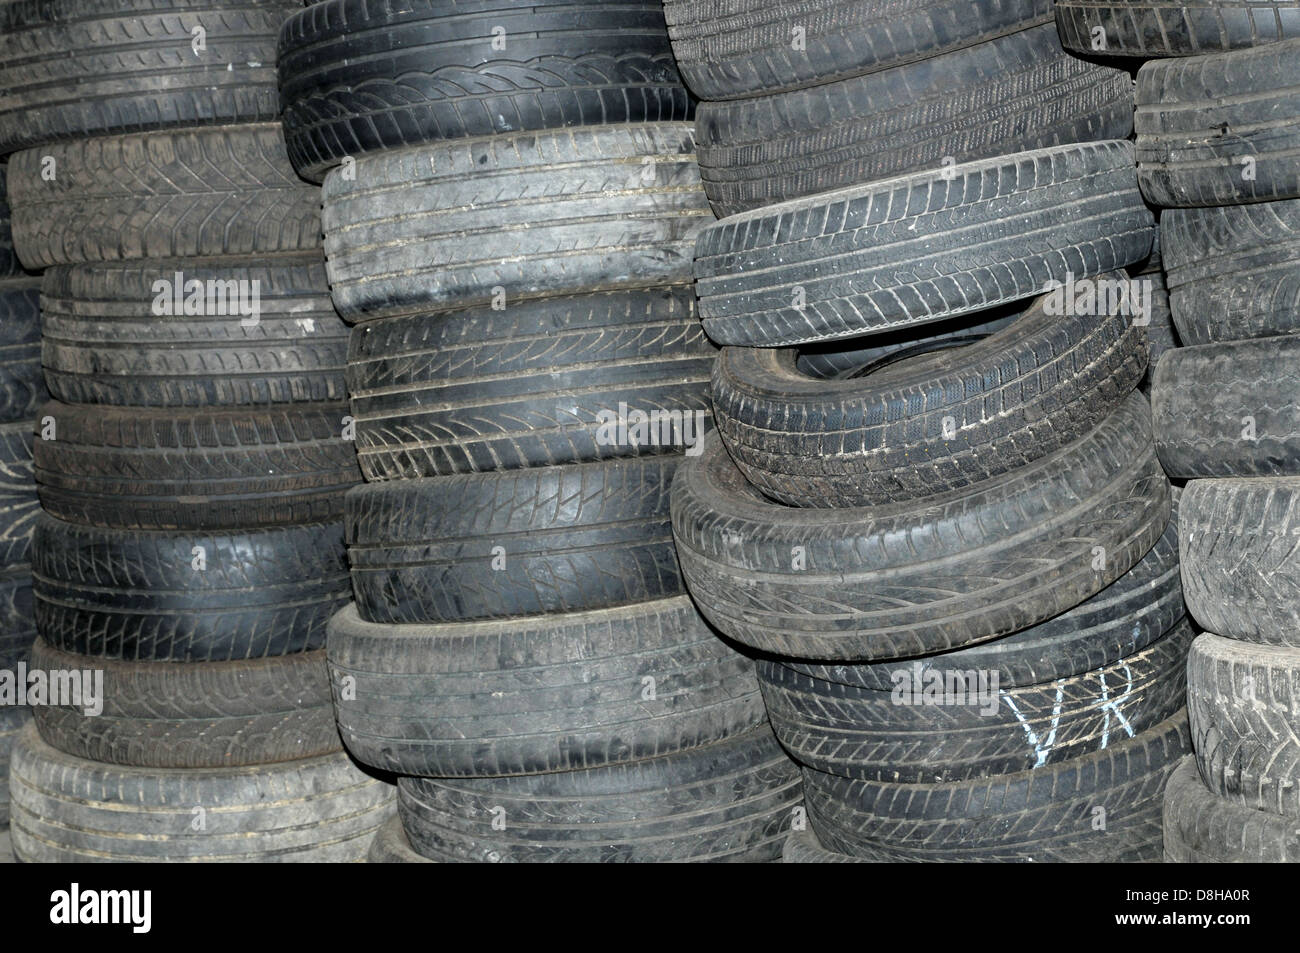 used tires Stock Photo